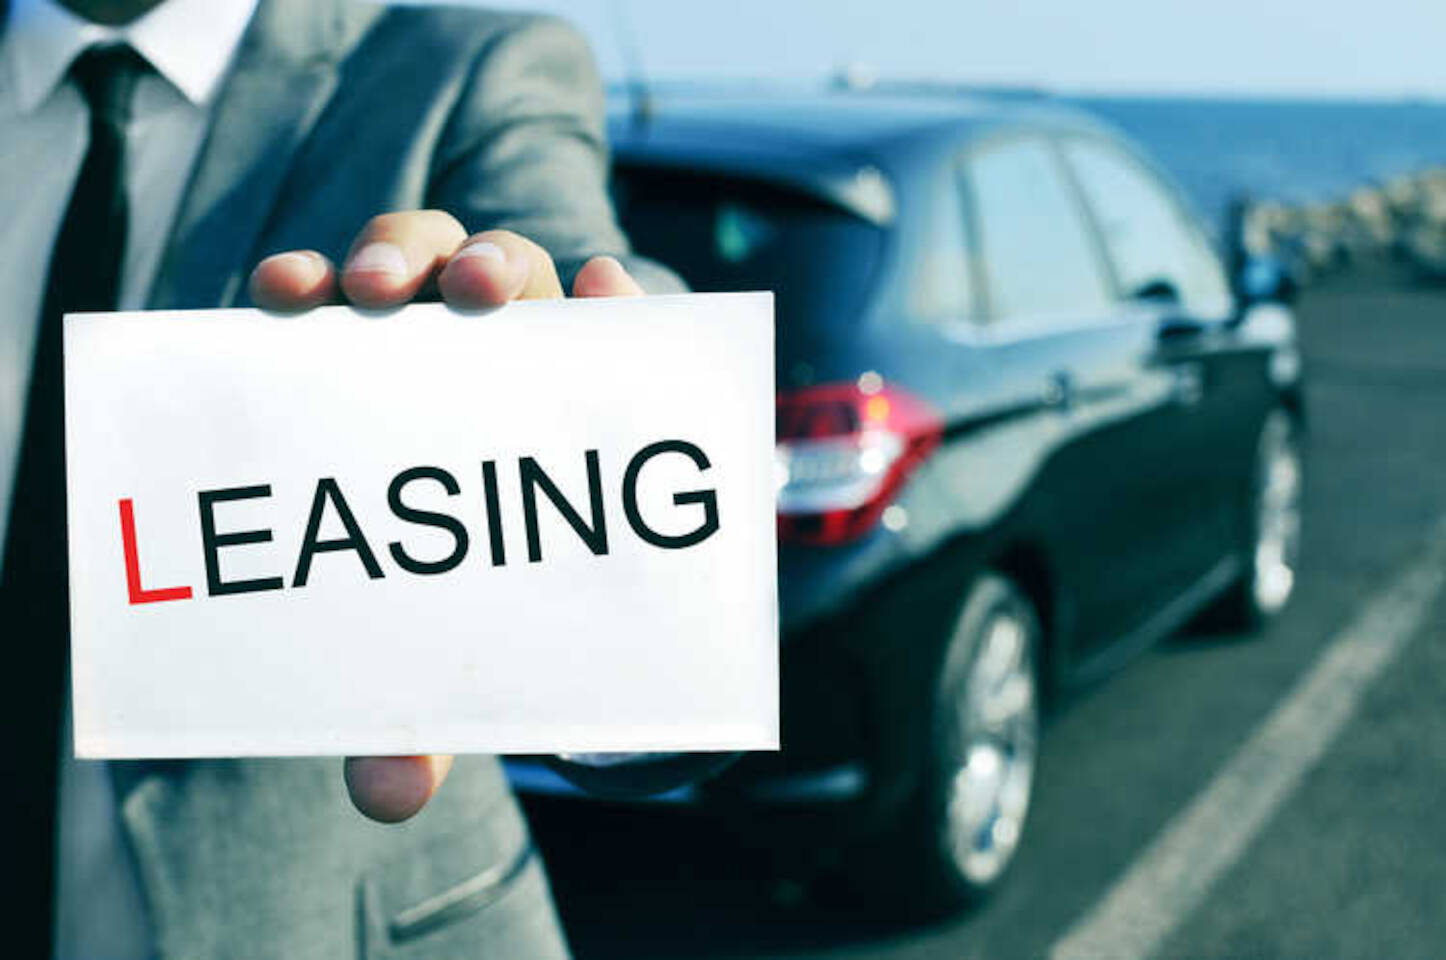 More UK businesses are leasing vehicles